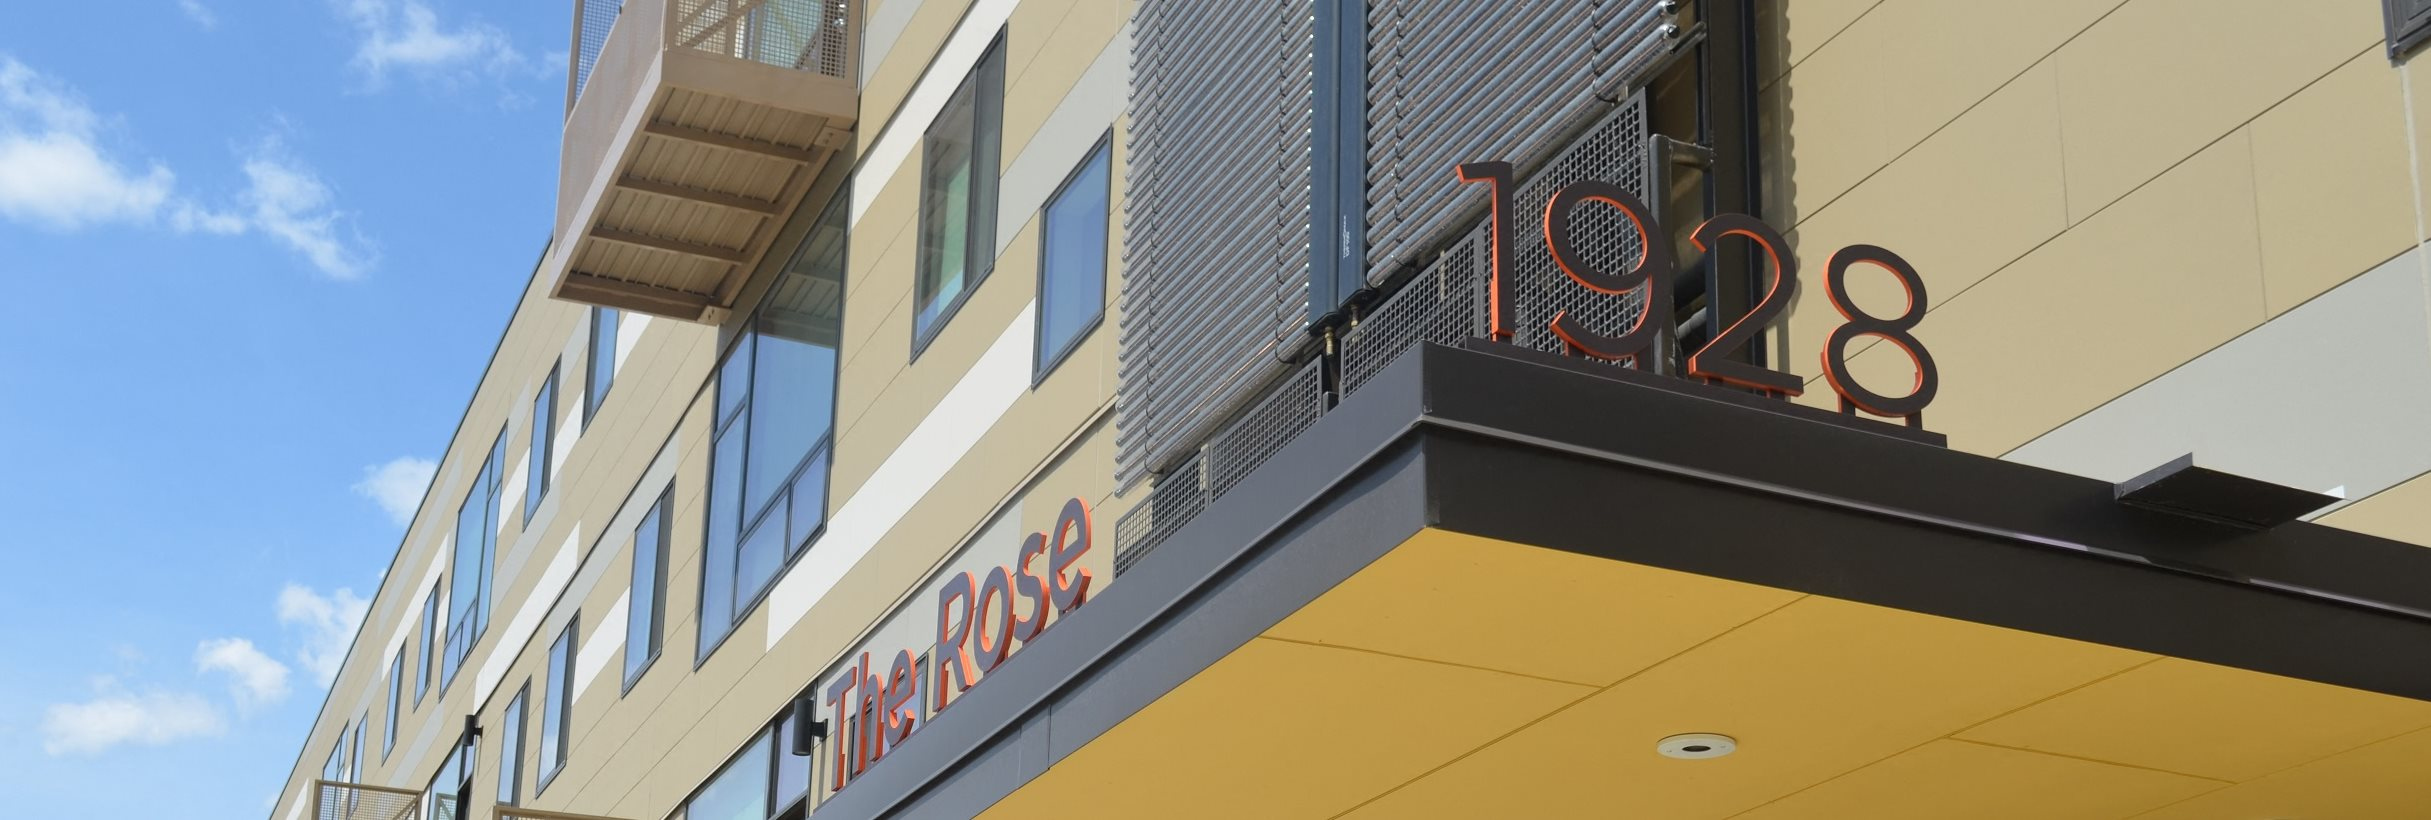 The Rose entry